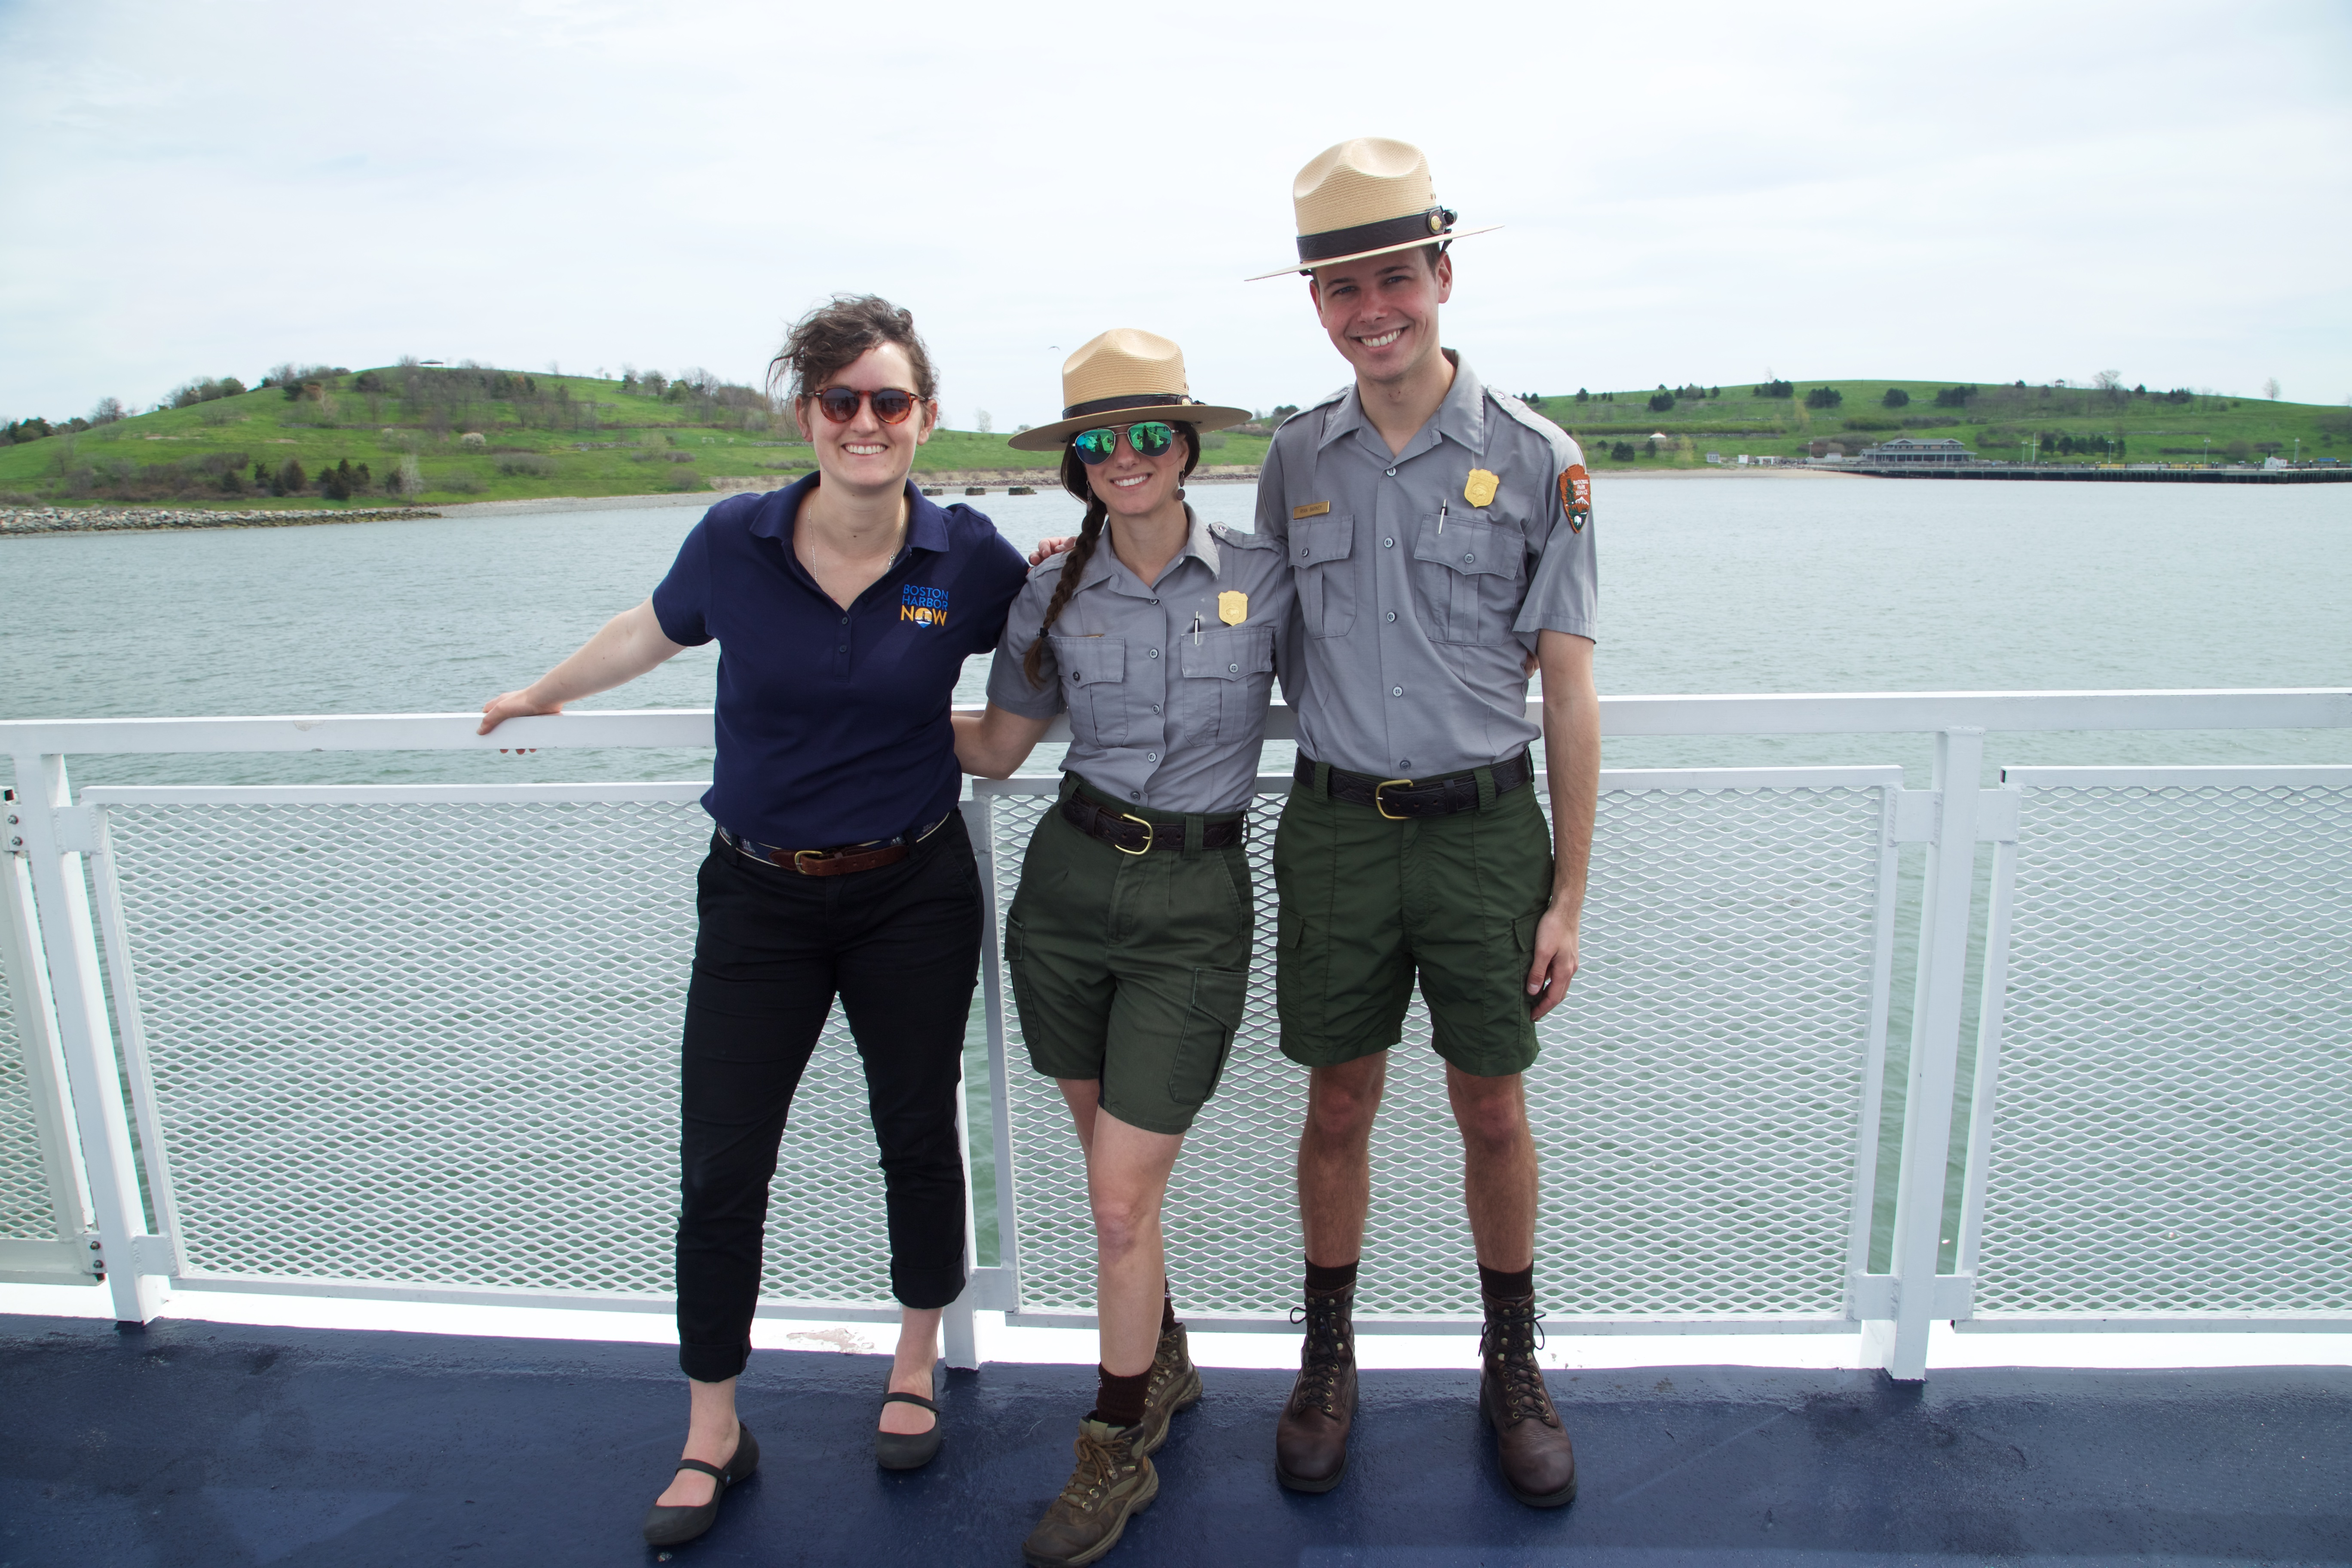 Park Rangers with BHN on ferry